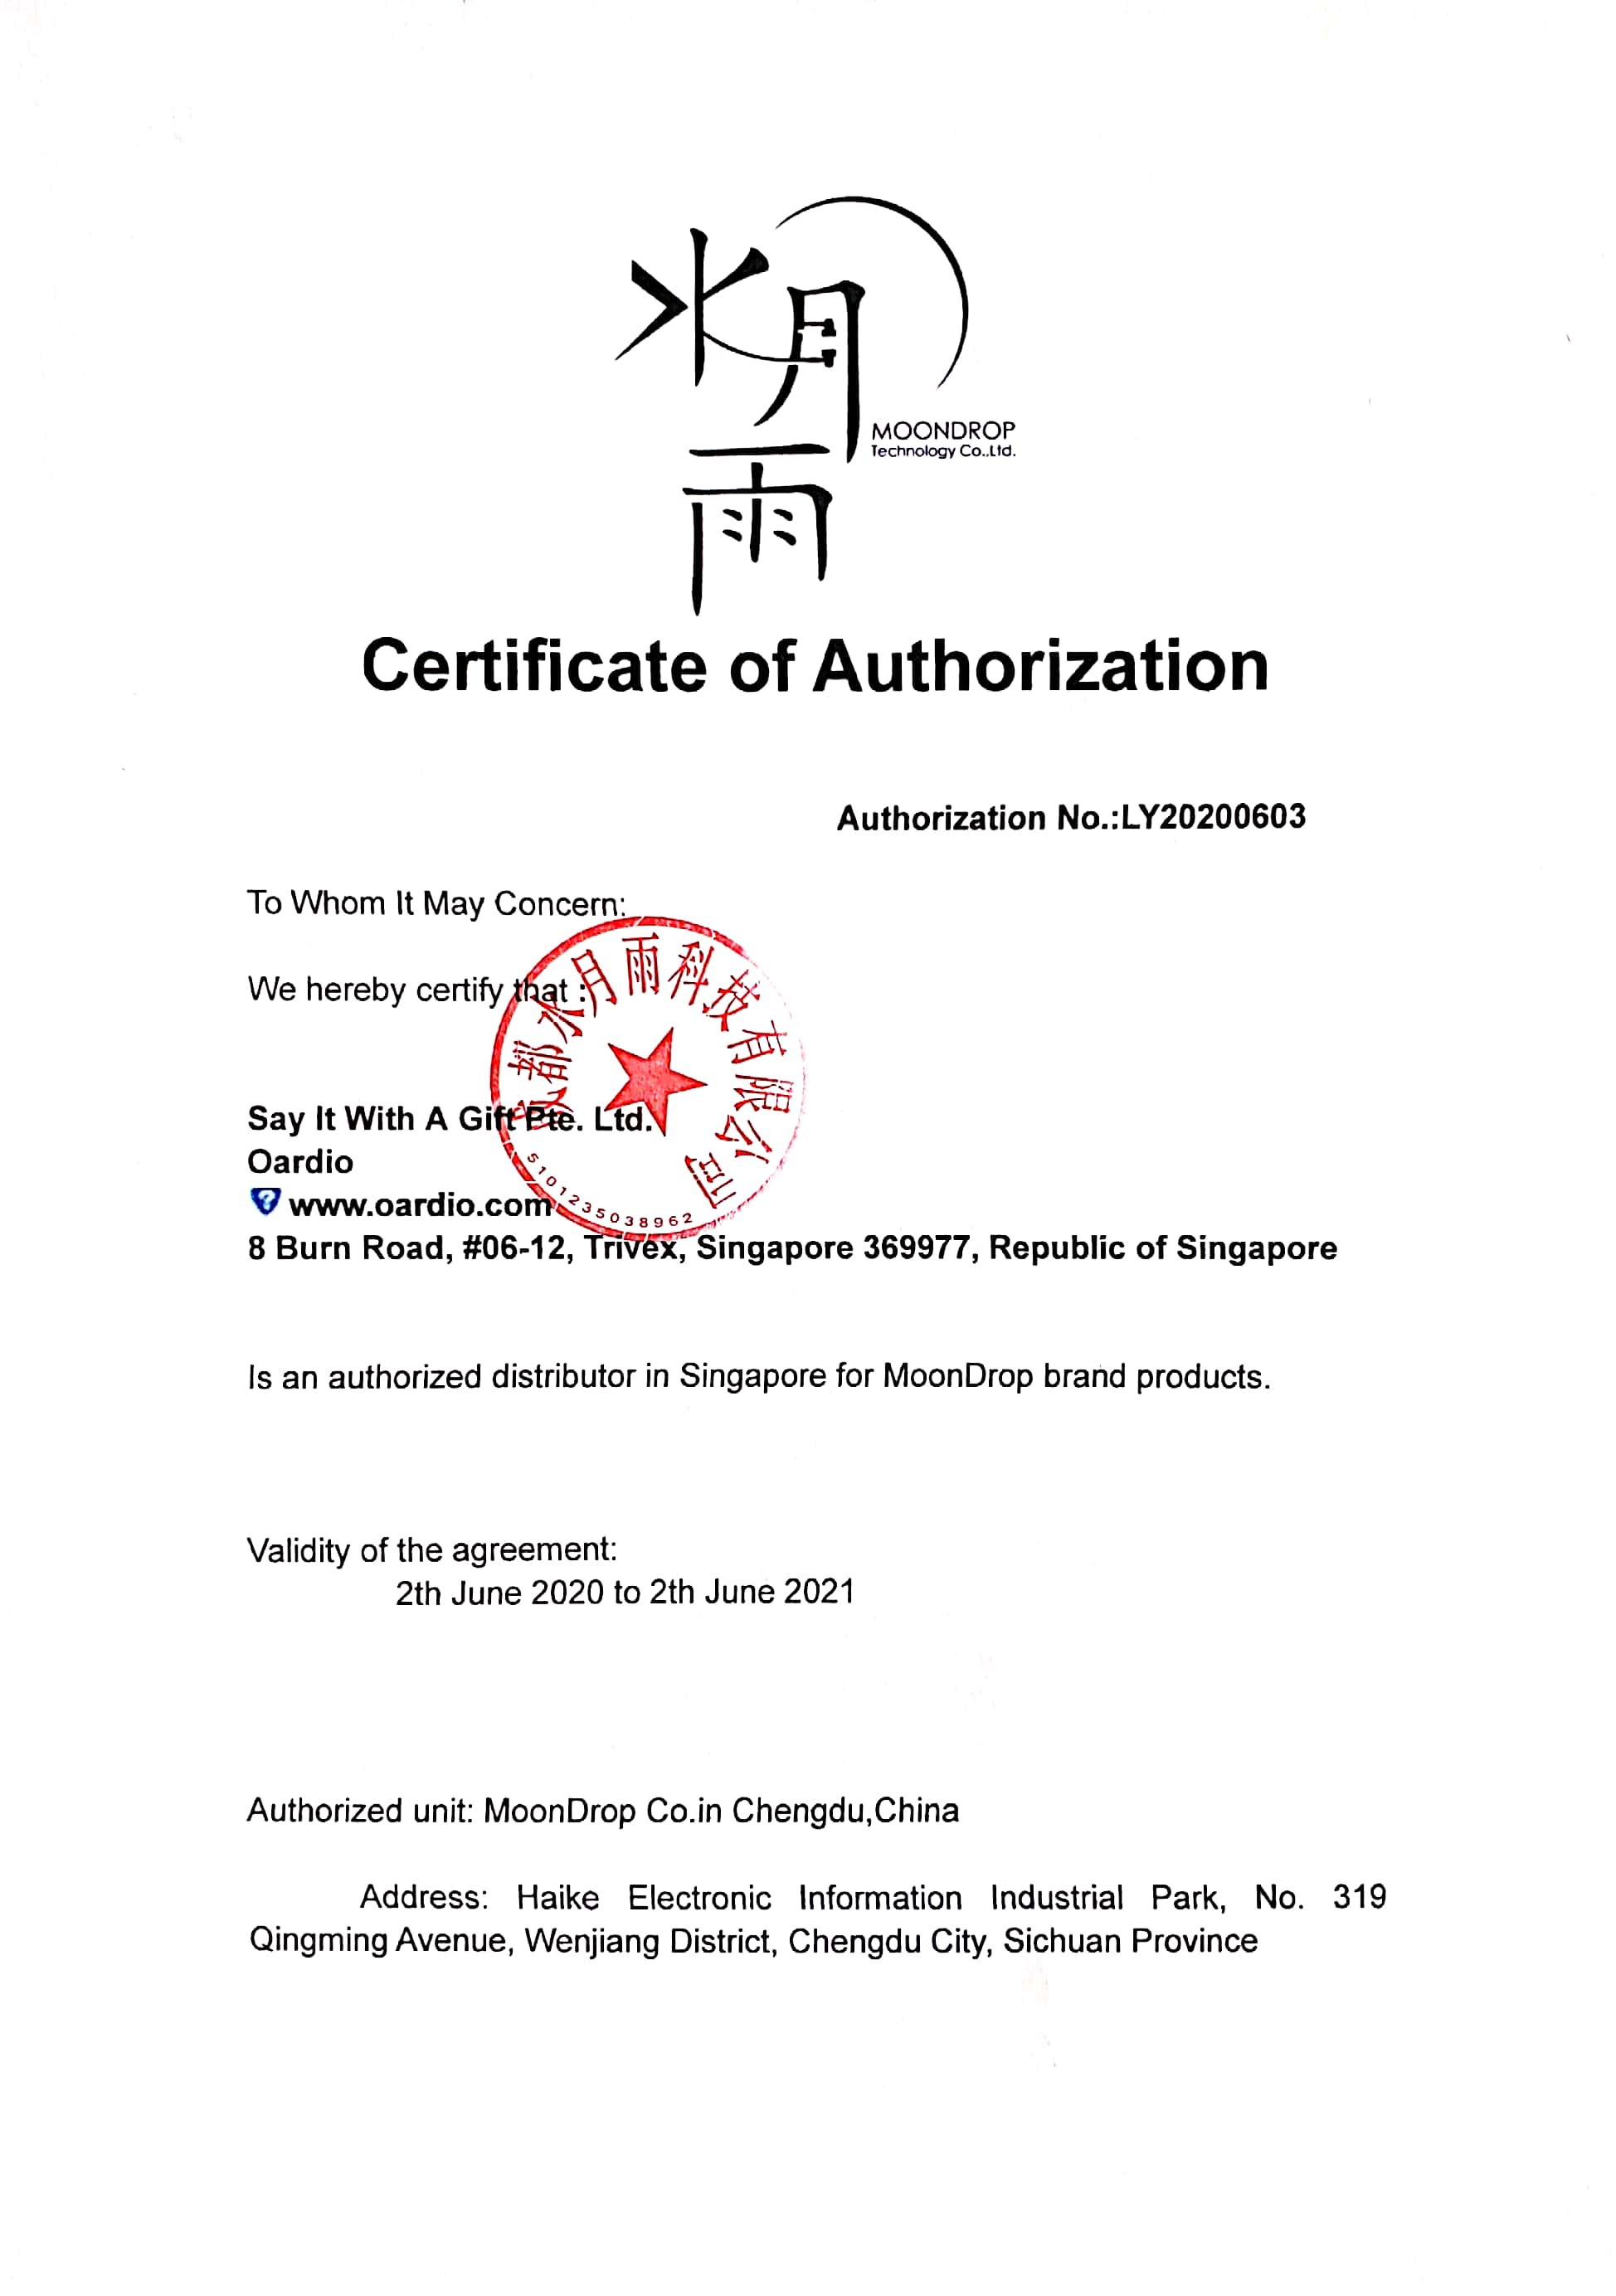 Moondrop Singapore Distributor Oardio Authorization Certificate